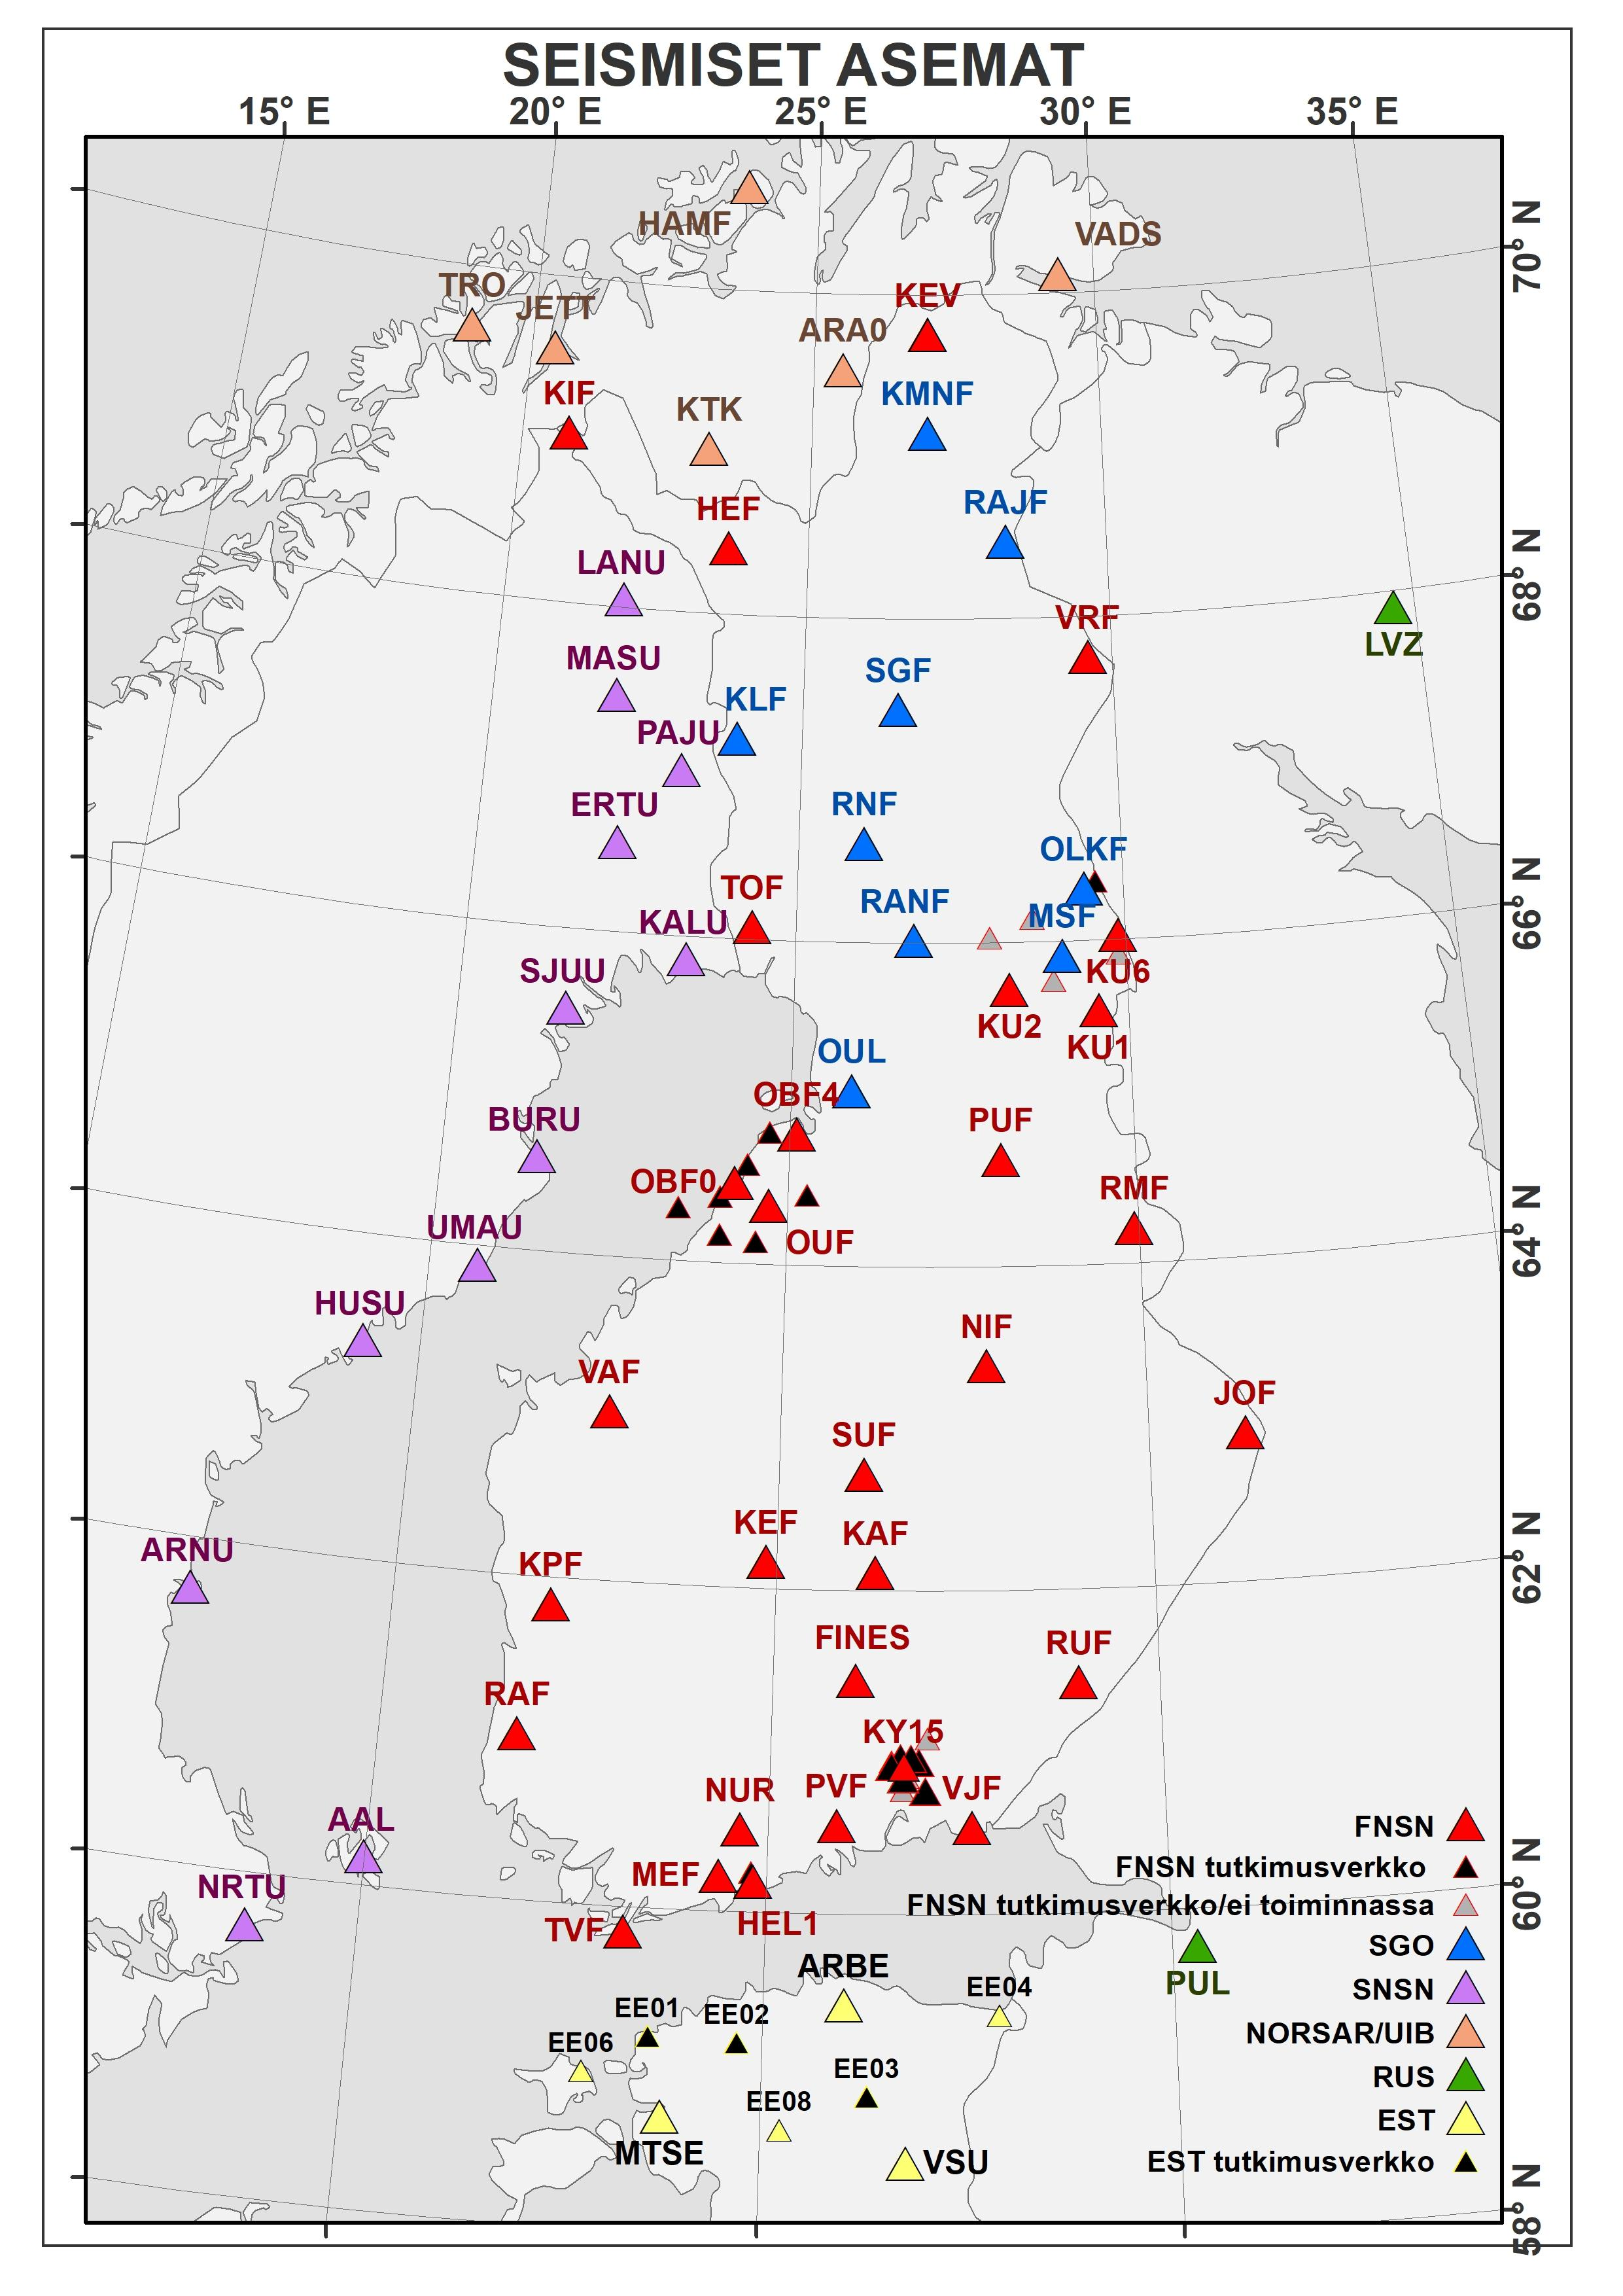 Seismic stations in Finland and neighbouring countries